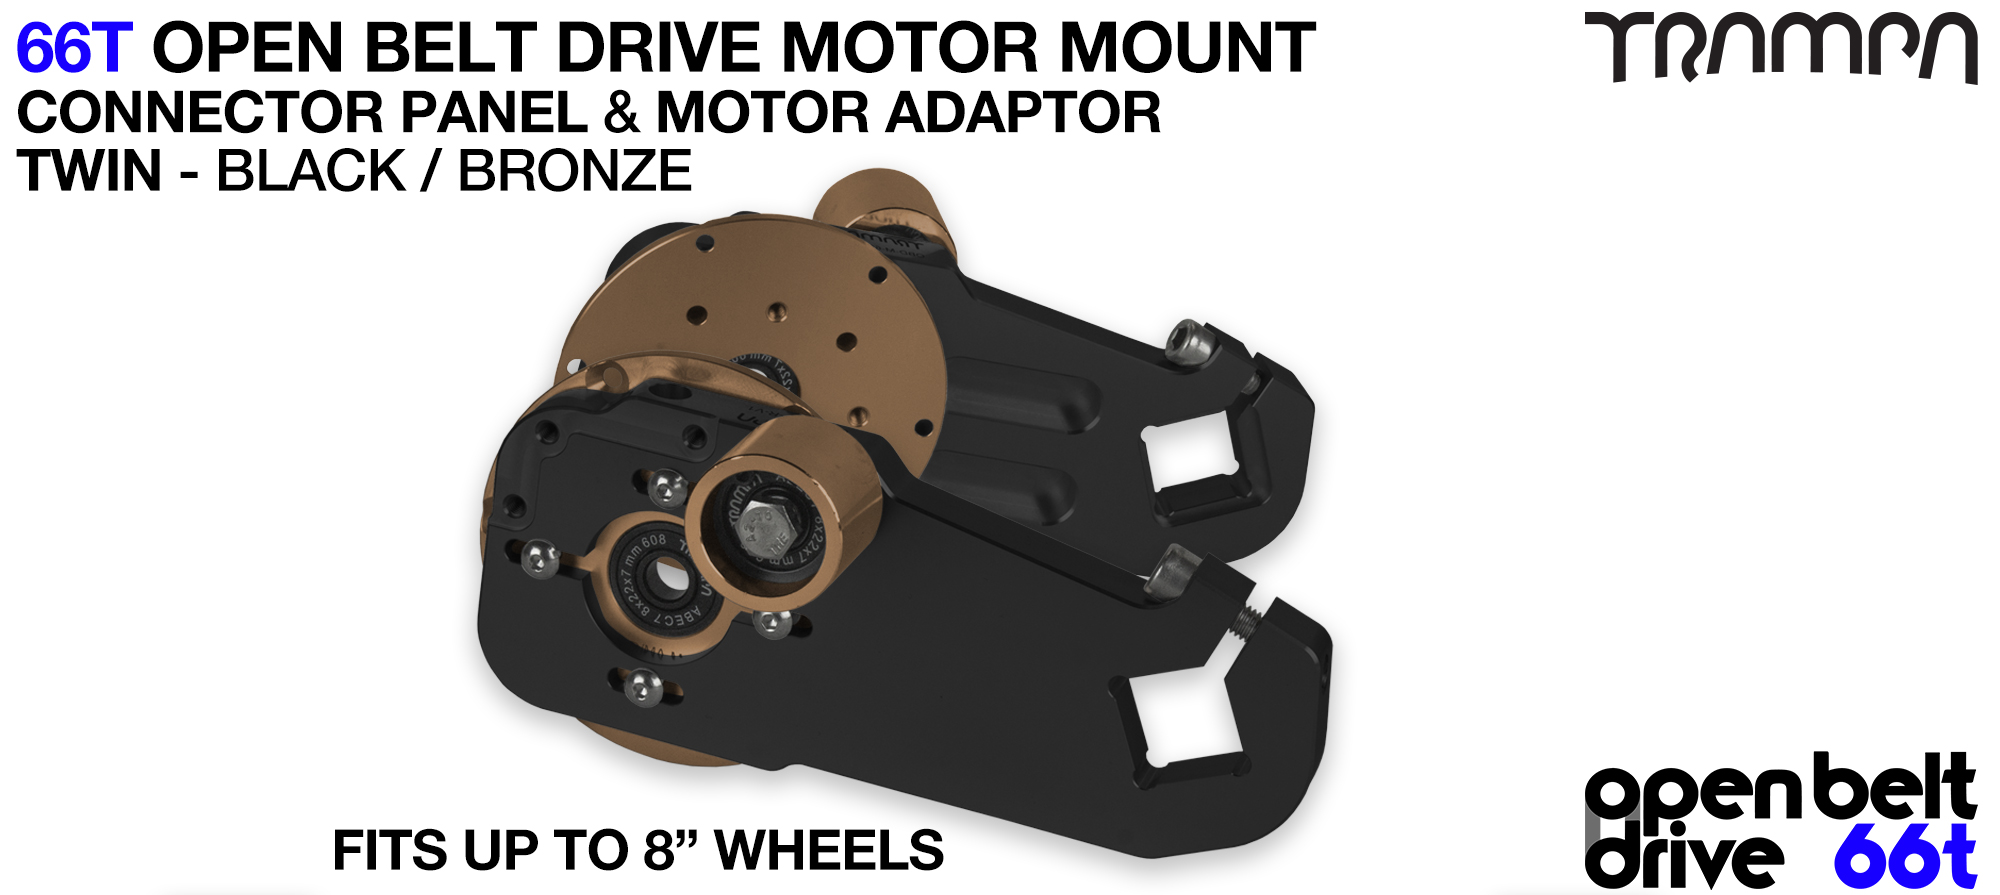 66T OPEN BELT DRIVE Motor Mount & Motor Adaptor - TWIN BRONZE